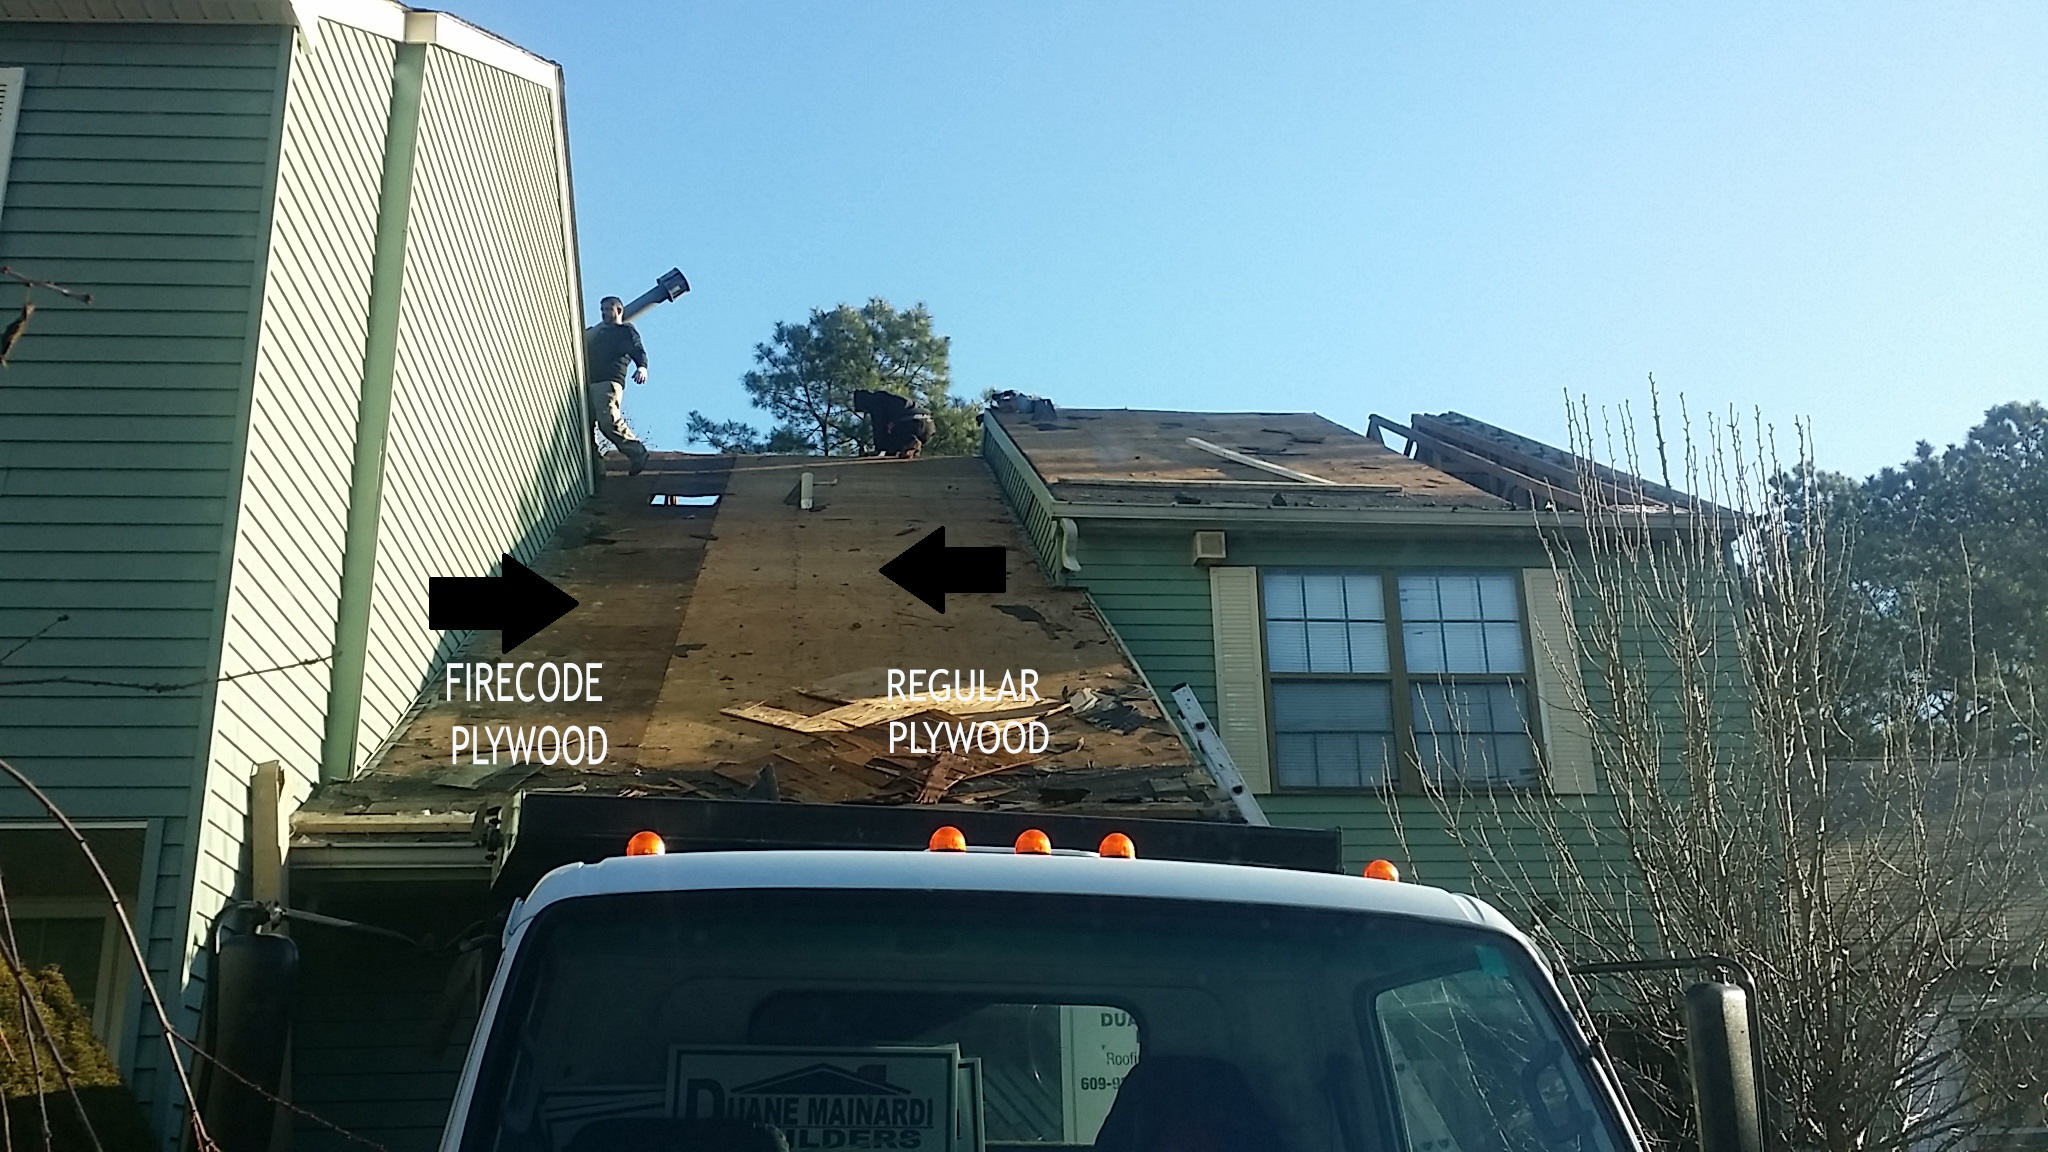 Firecode Plywood 101 Flawed Fire Retardant Plywood Continues To Cause Homeowners Headaches